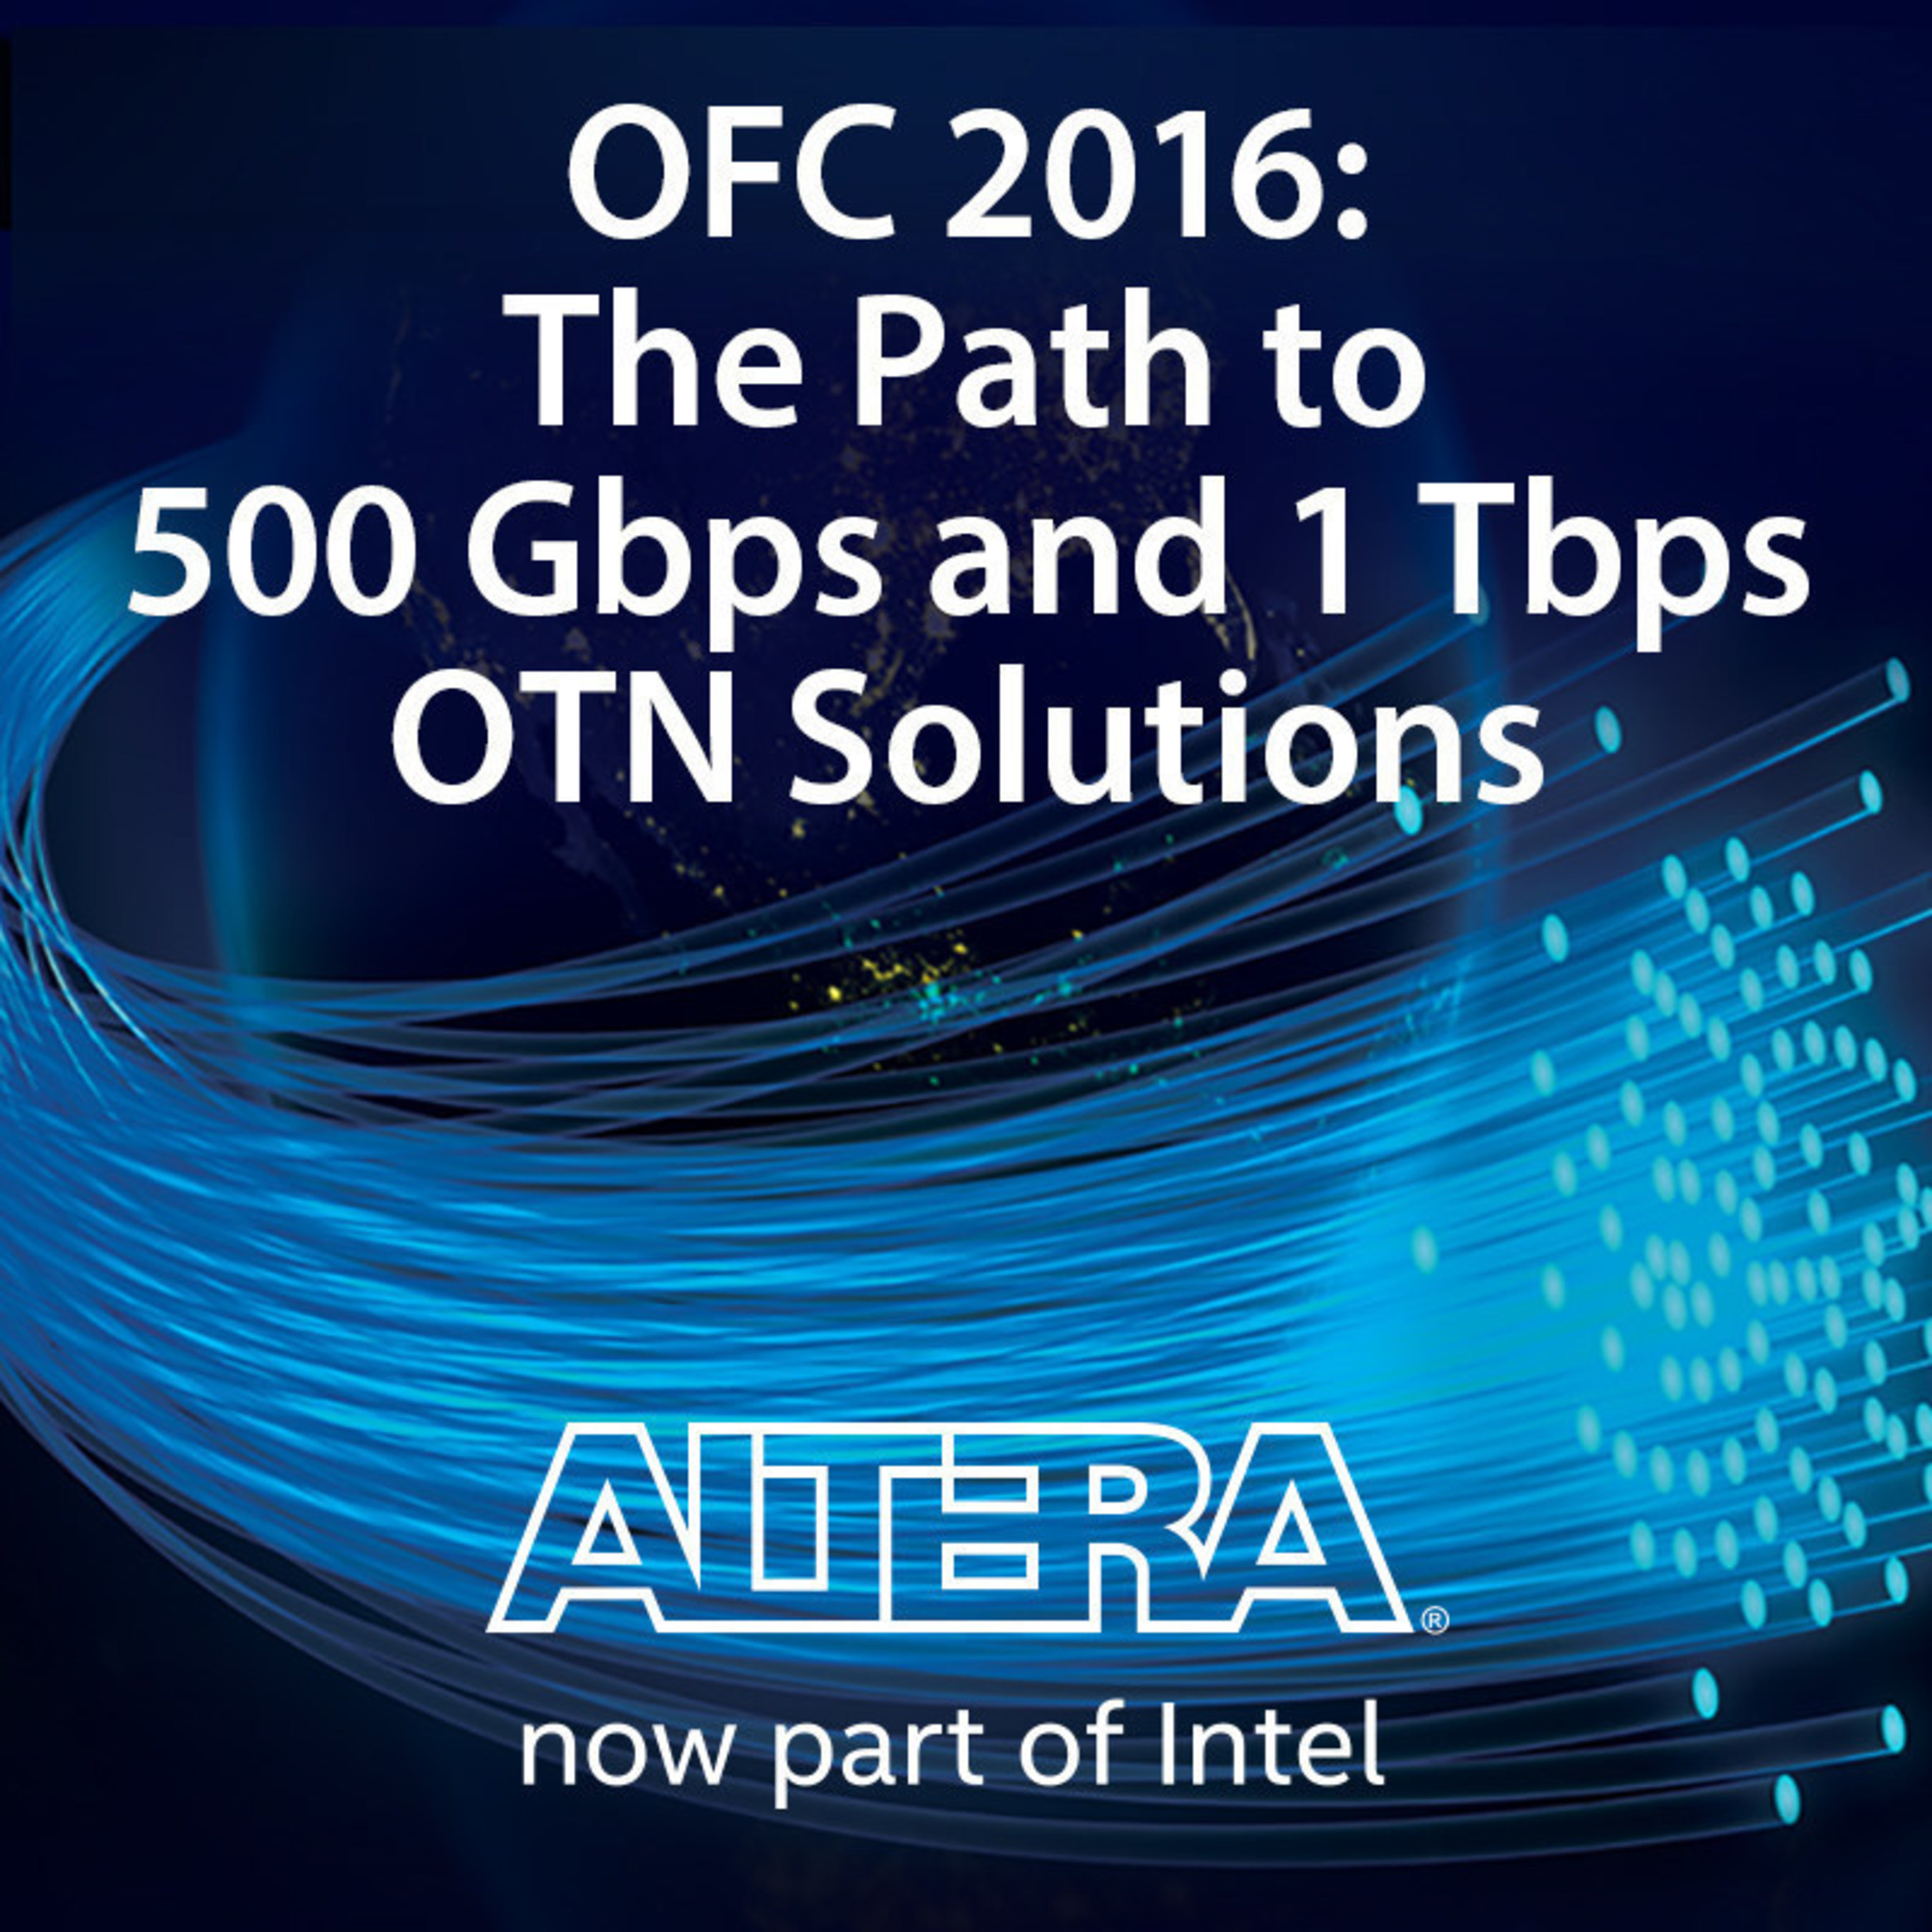 Altera Targets Next-Gen 500Gbps-1Tb Optical Transport Networks